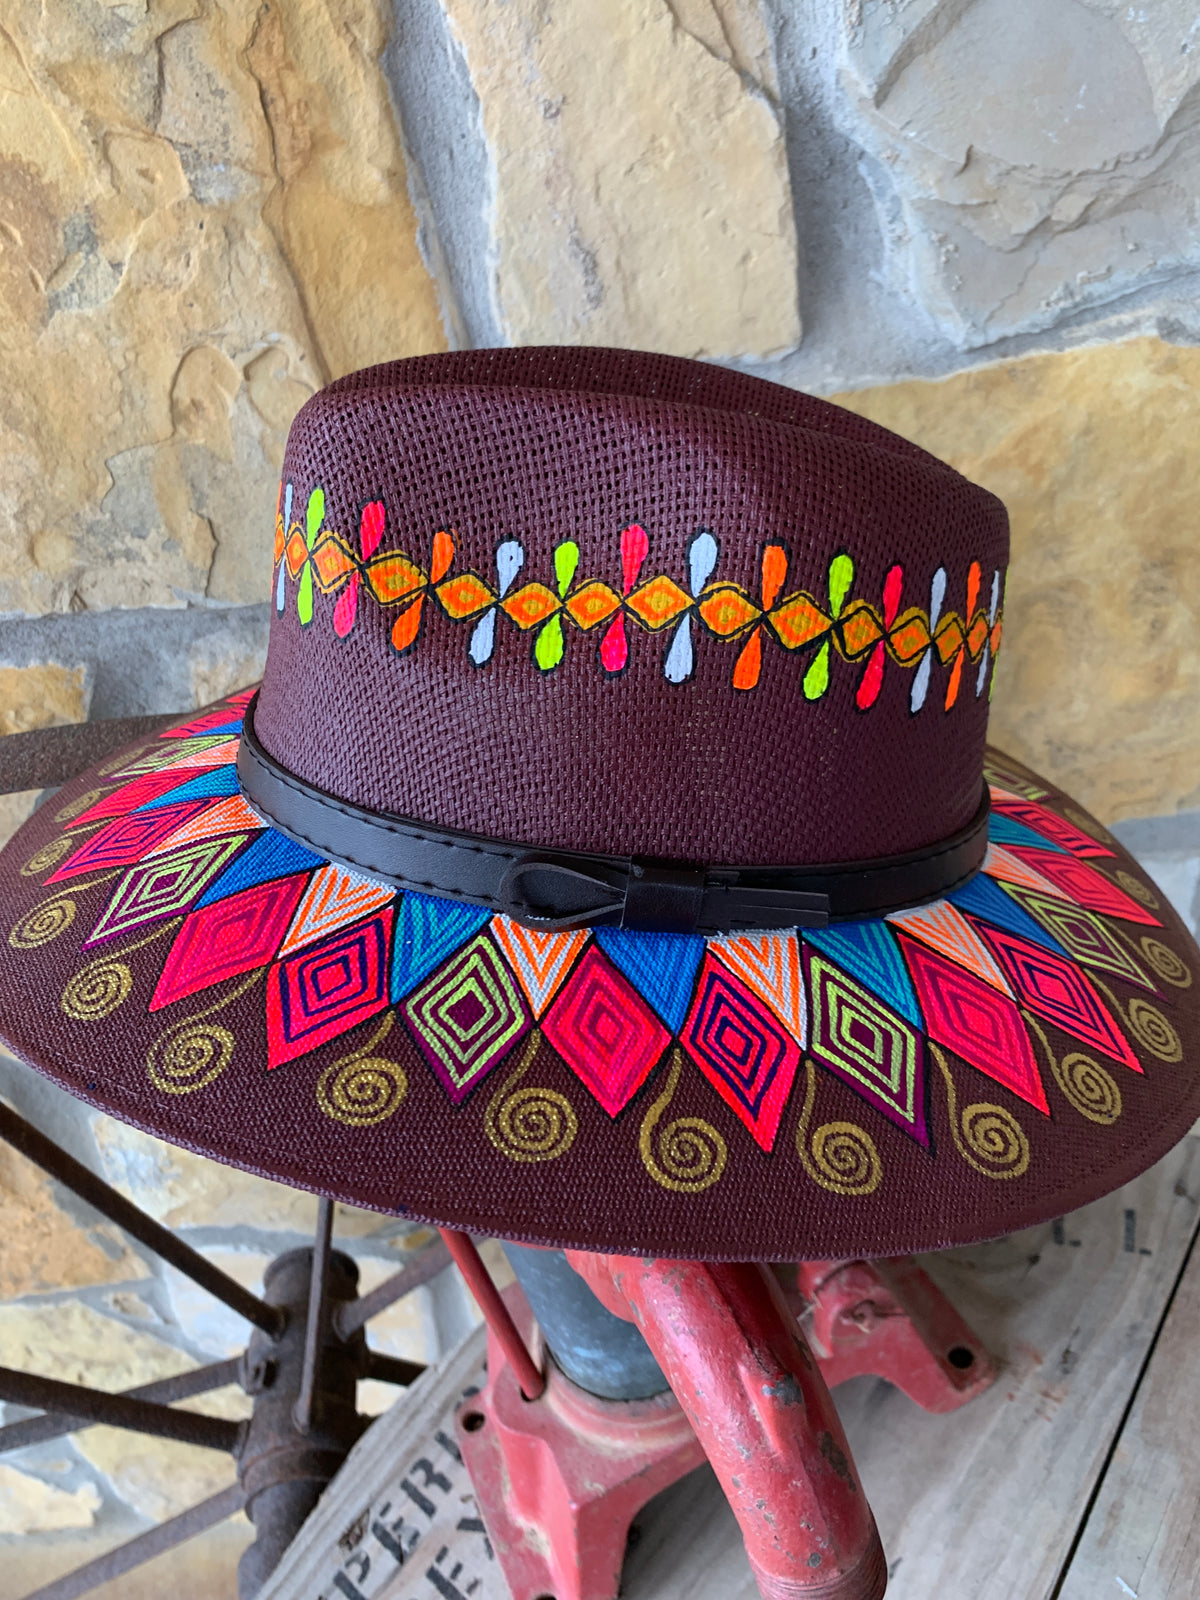 The Fiesta Painted Hat Collection